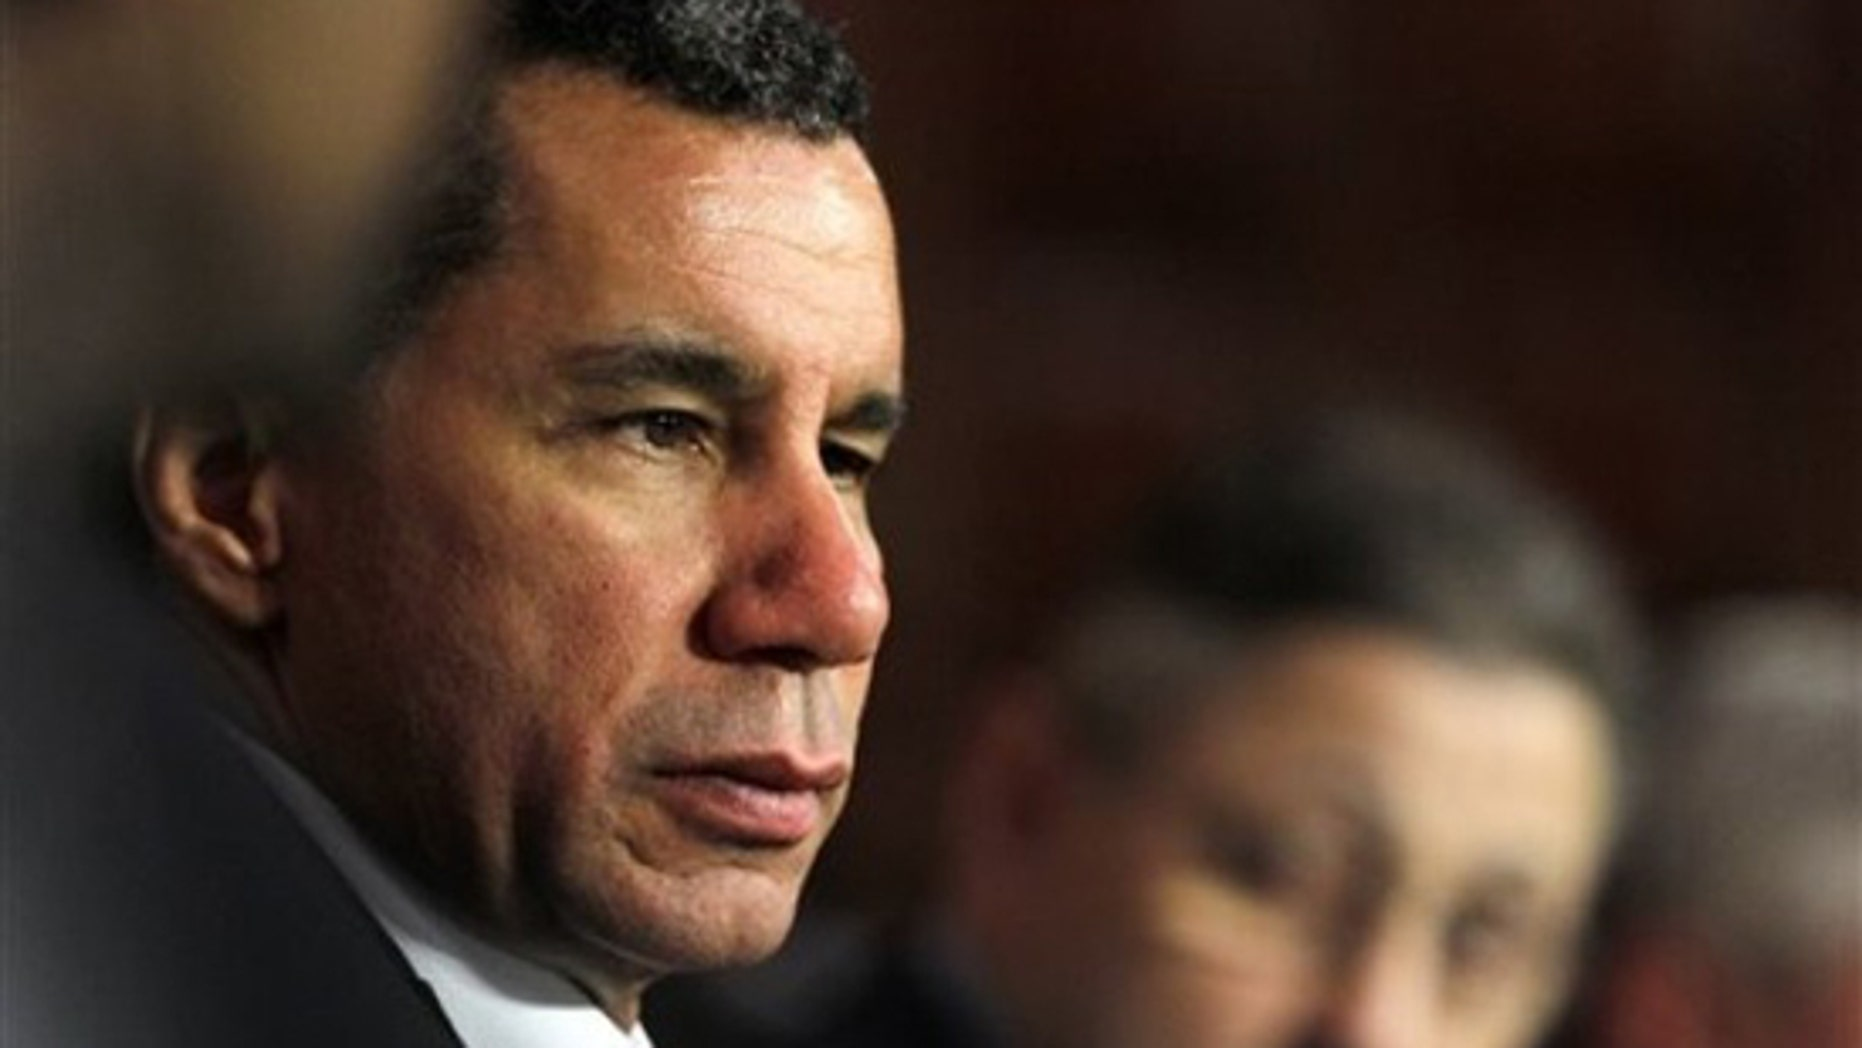 New York Gov. David Paterson listen to a speaker during a legislative leaders' budget meeting at the Capitol in Albany, N.Y. , on Wednesday, March 3, 2010. (AP)